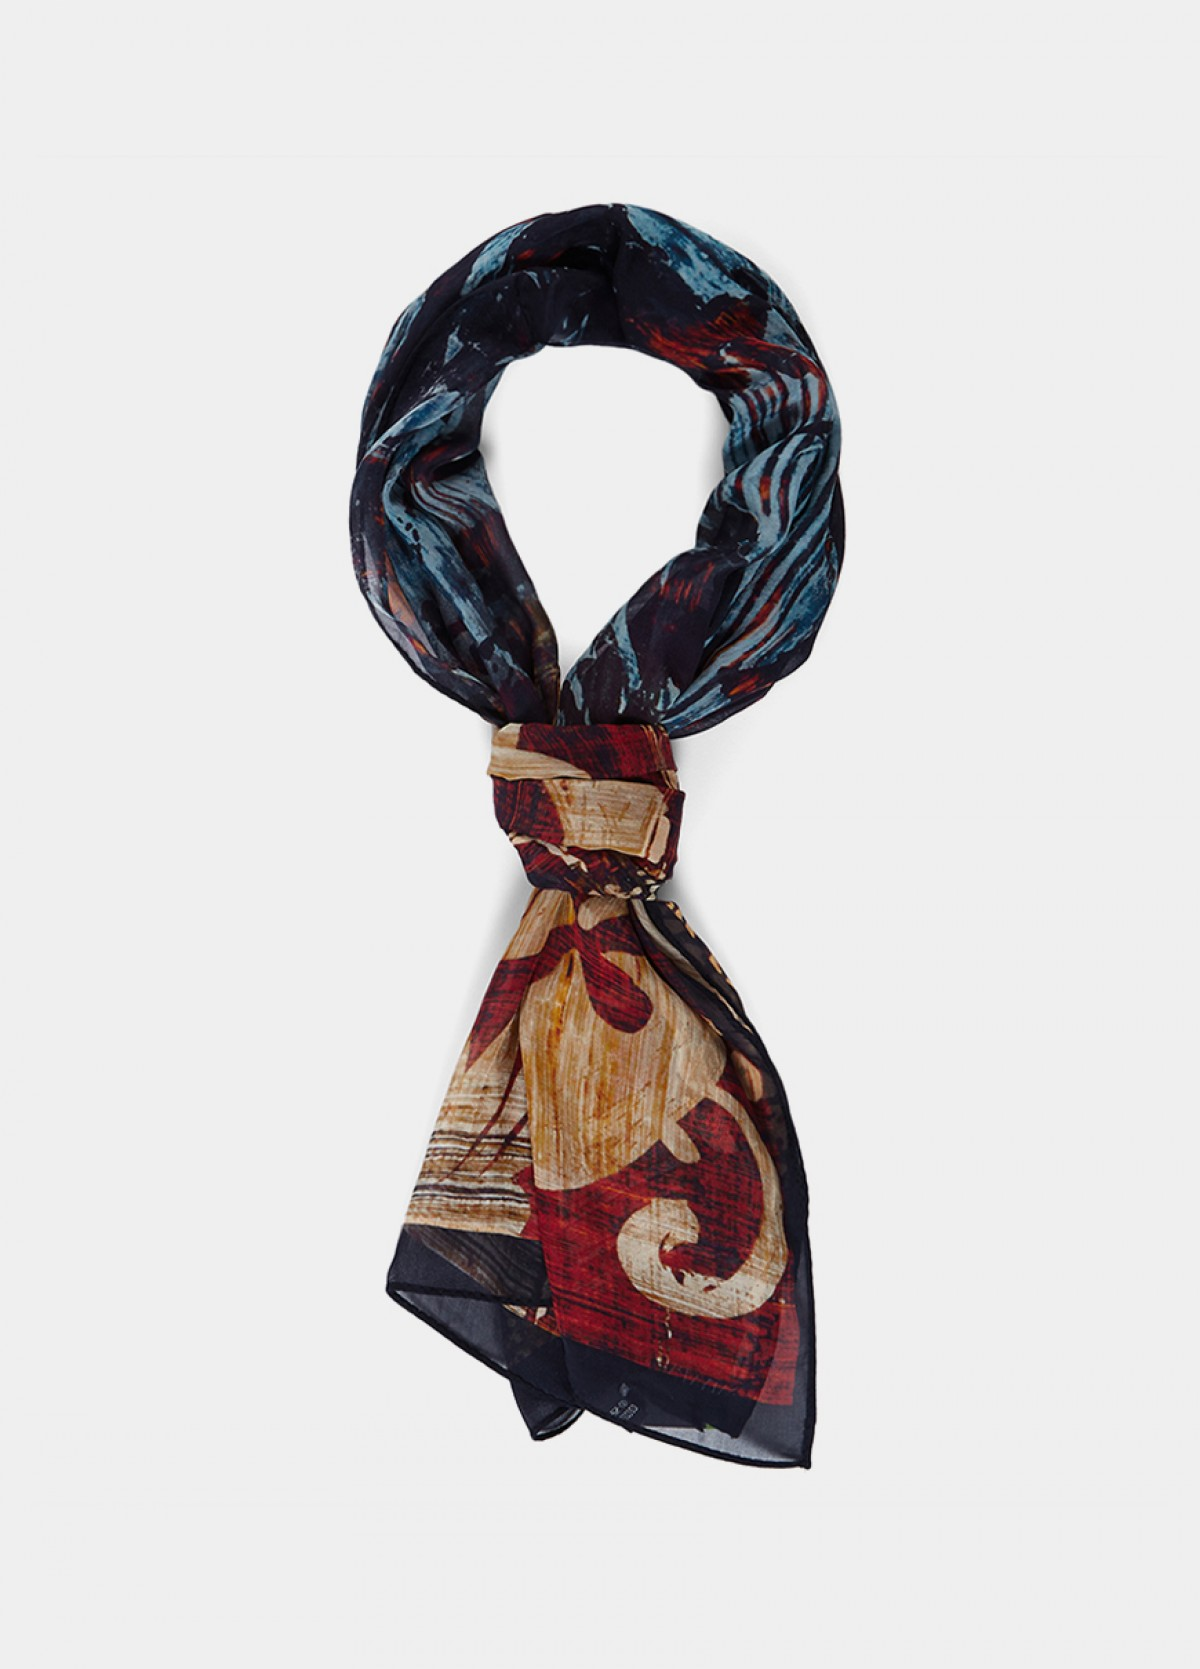 The Pure Silk Printed Stole